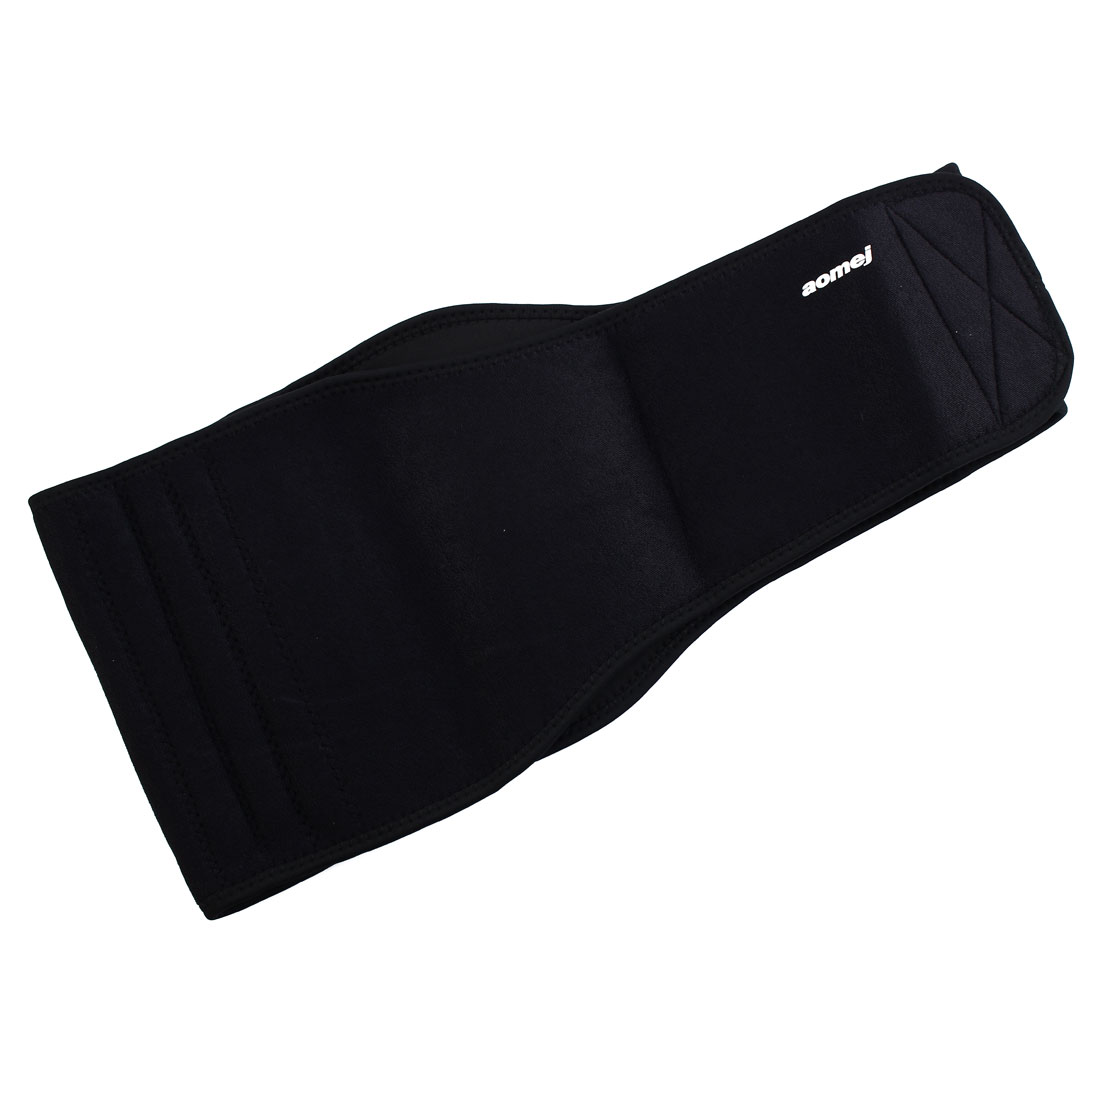 Black Neoprene Waist Support Back Elastic Brace